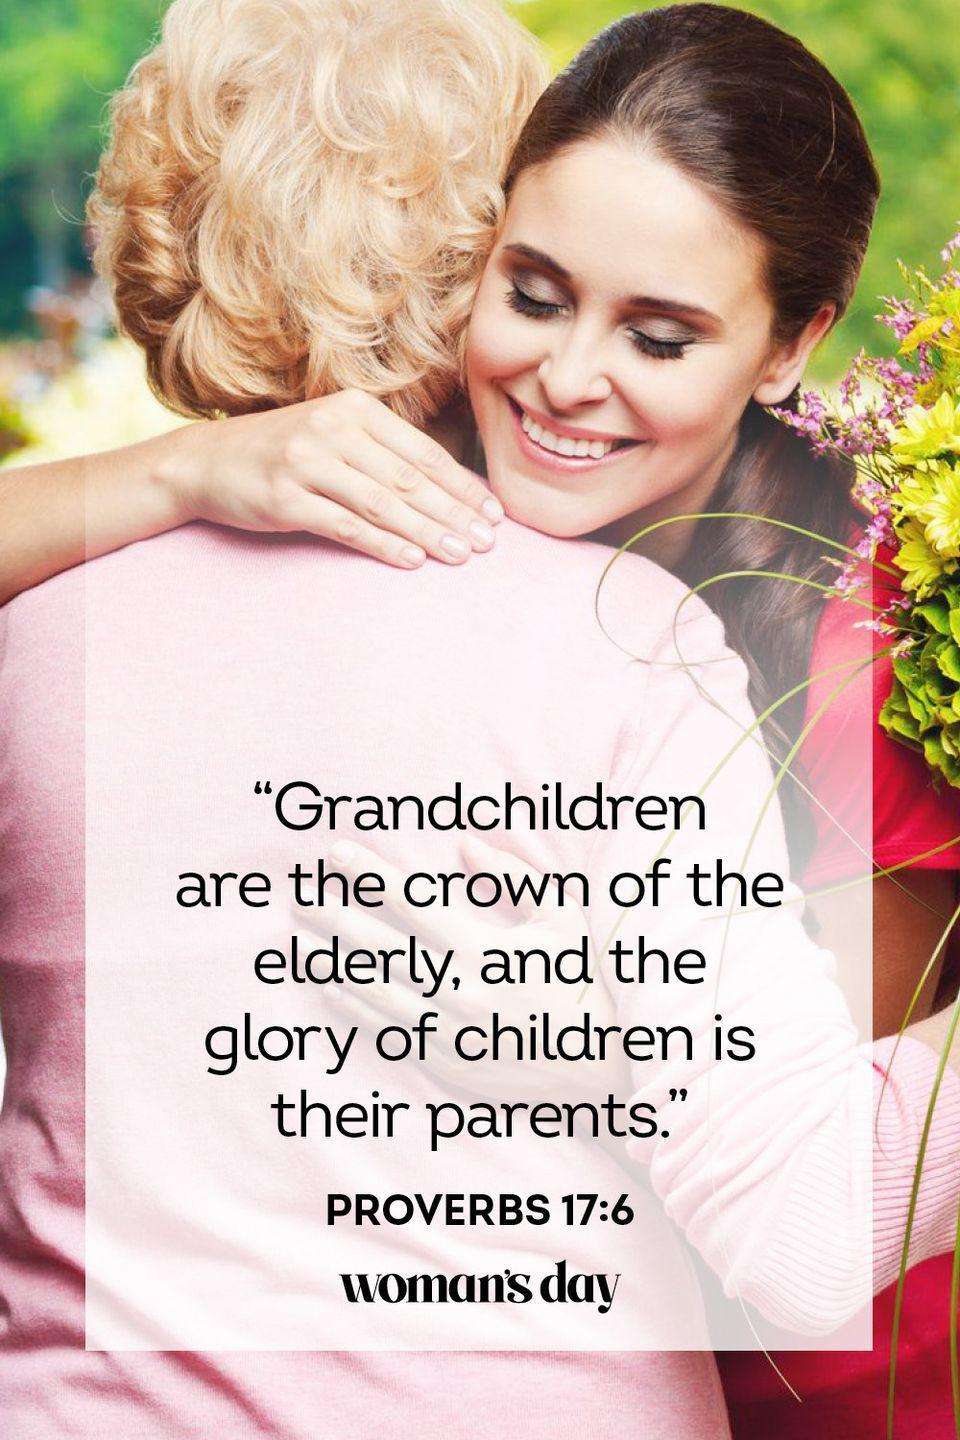 "<p>""Grandchildren are the crown of the elderly, and the glory of children is their parents.""</p><p><strong>The Good News: </strong>When you live in a way that makes your children proud, you provide a legacy of character and faith.</p>"